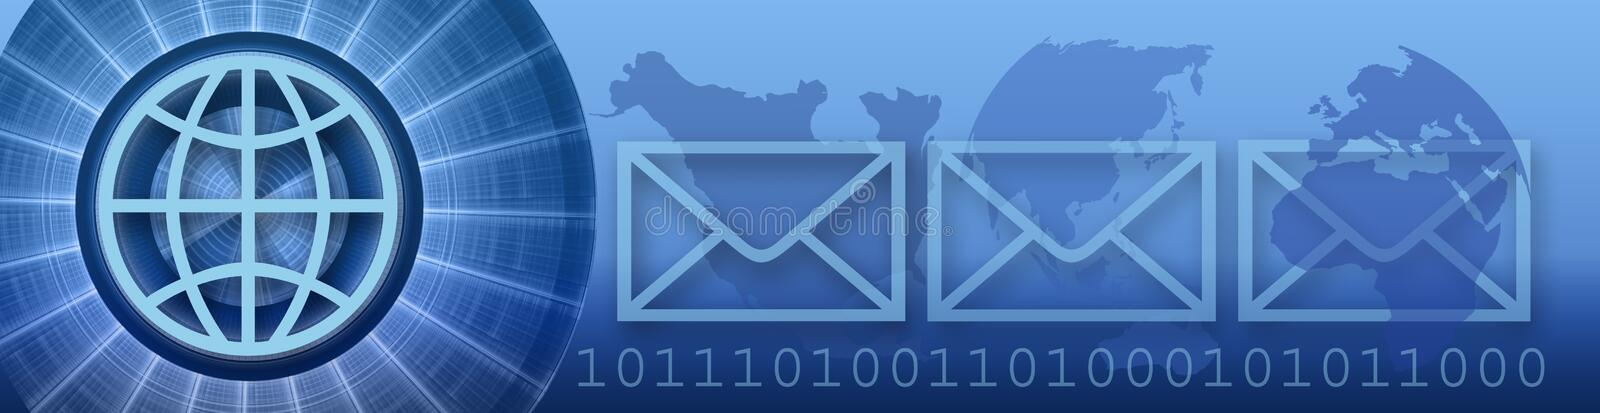 Banner Technology and WW Internet. The creative circle, globe (symbol), four continents, e-mail envelopes and binary codes are symbolic for Technology and e-mail vector illustration